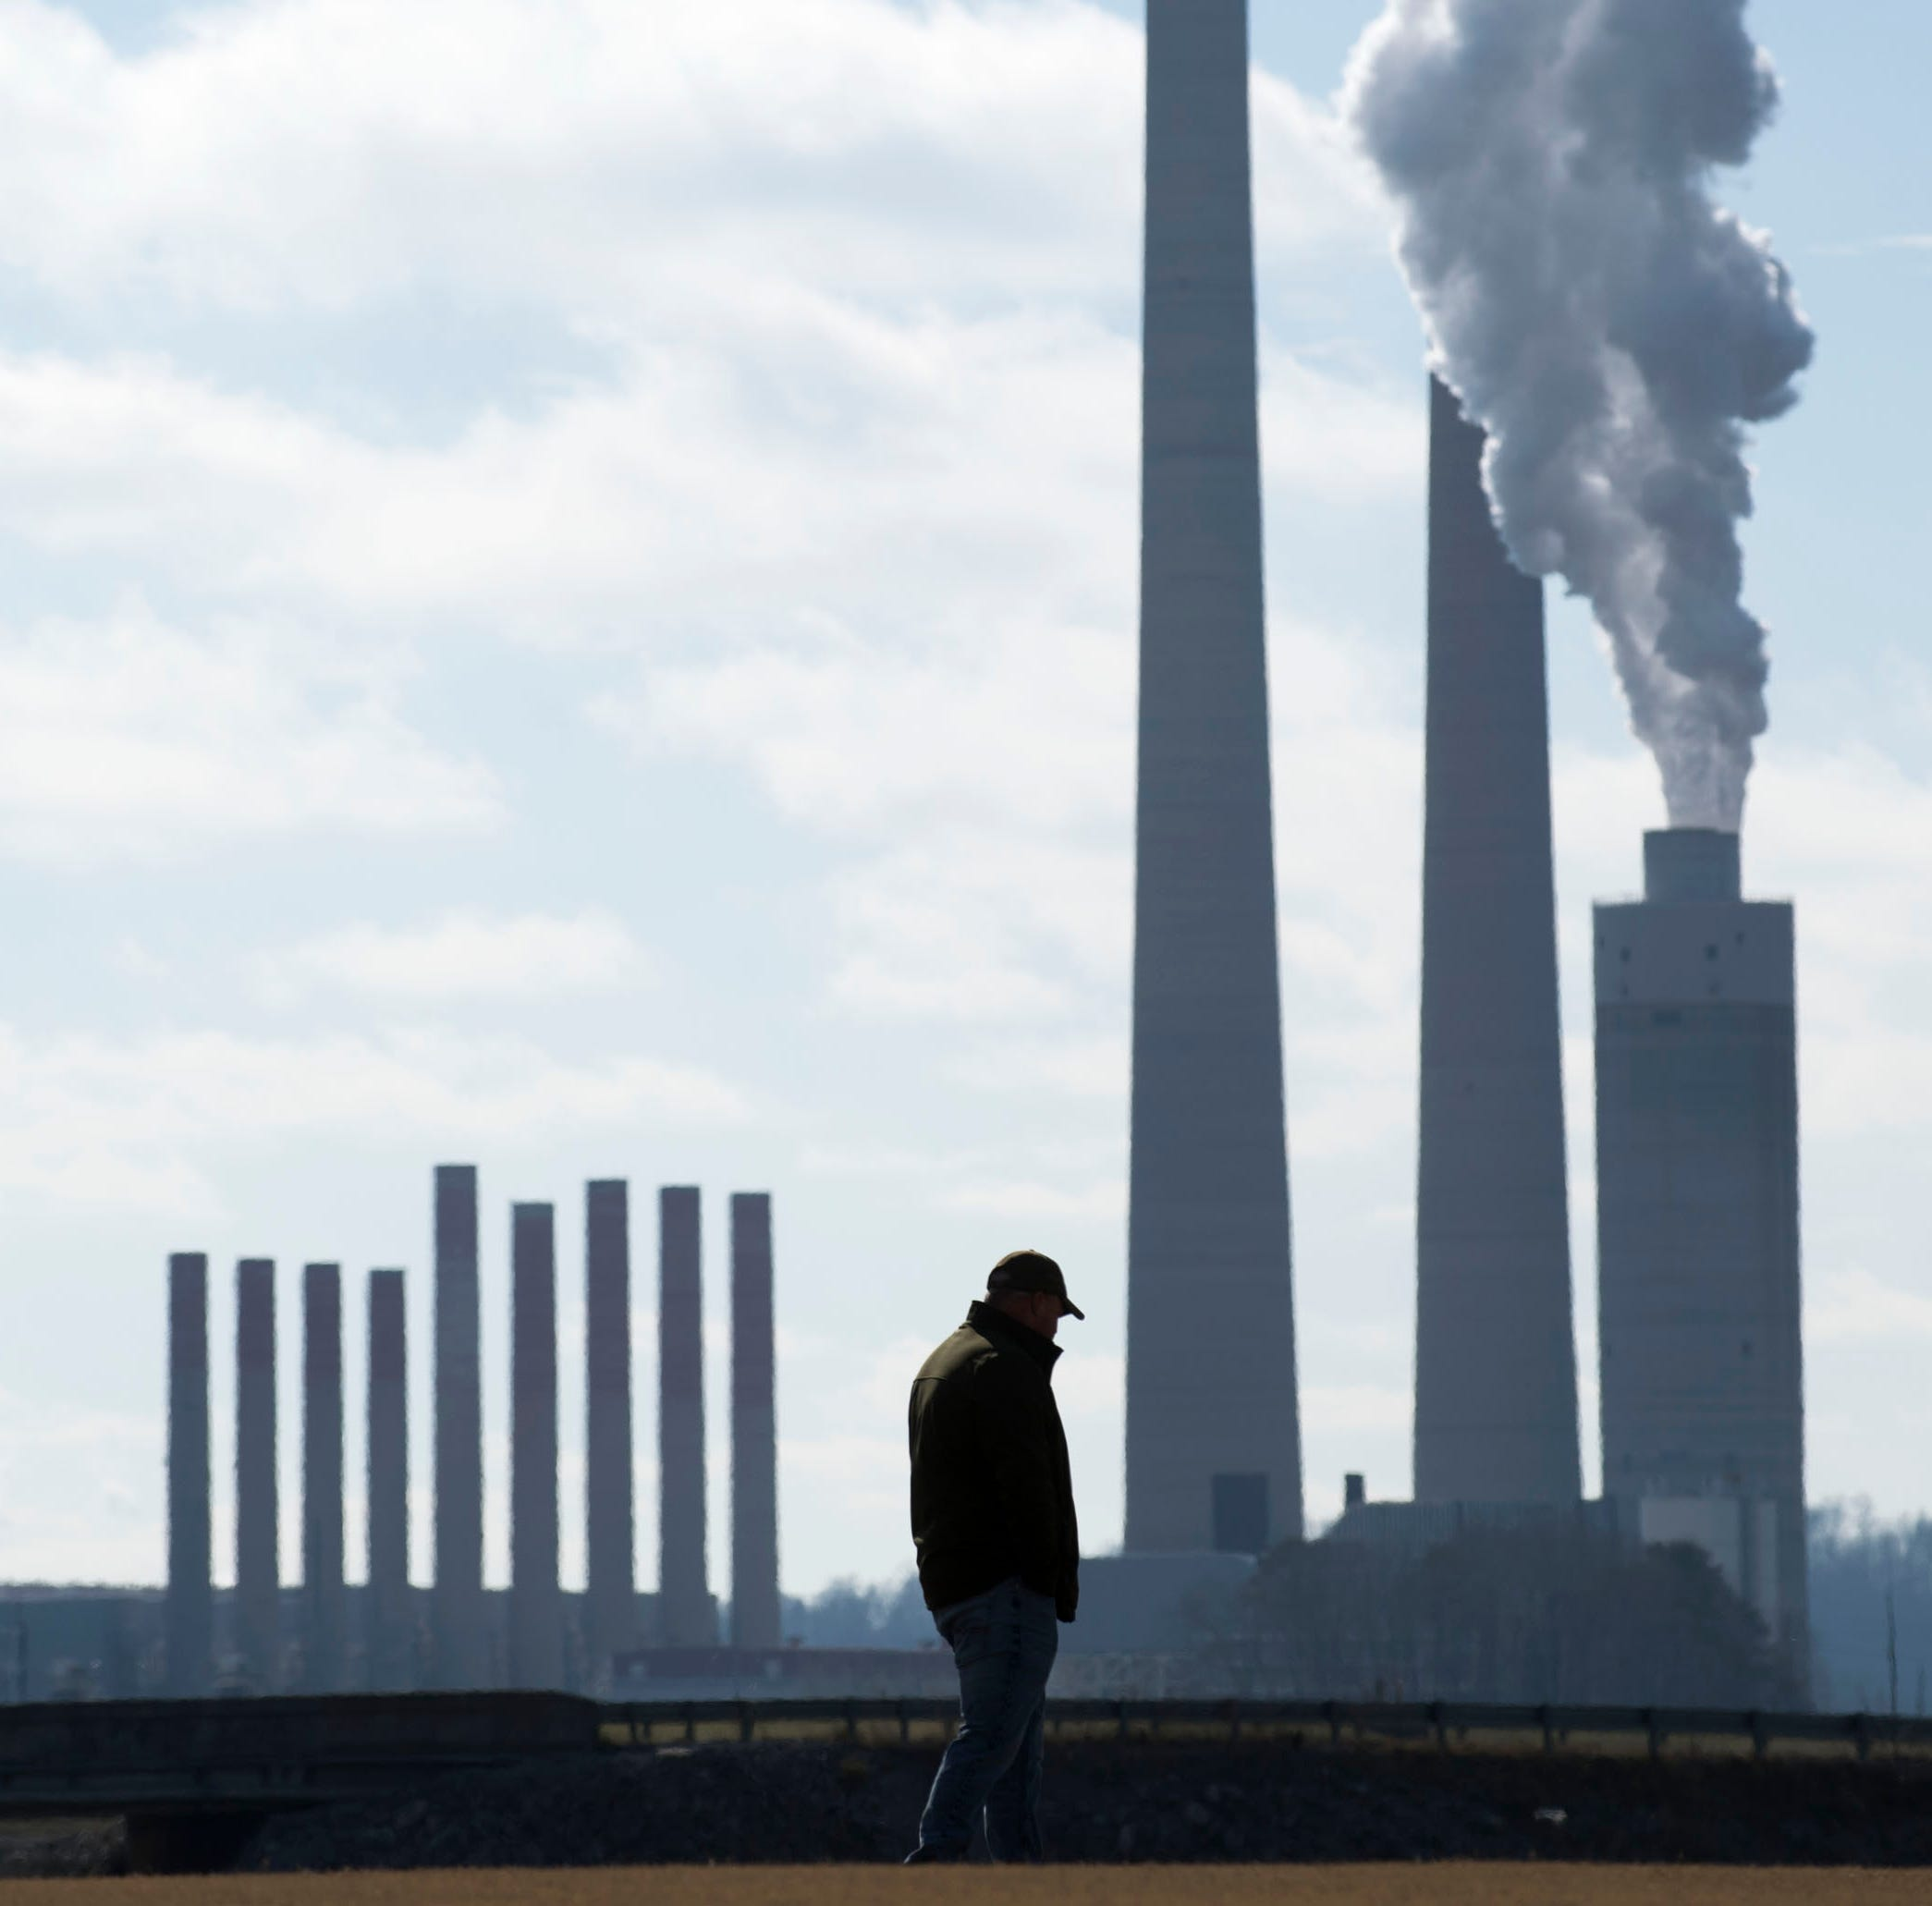 TVA doing up to $200M worth of business with contractor accused of poisoning coal ash workers